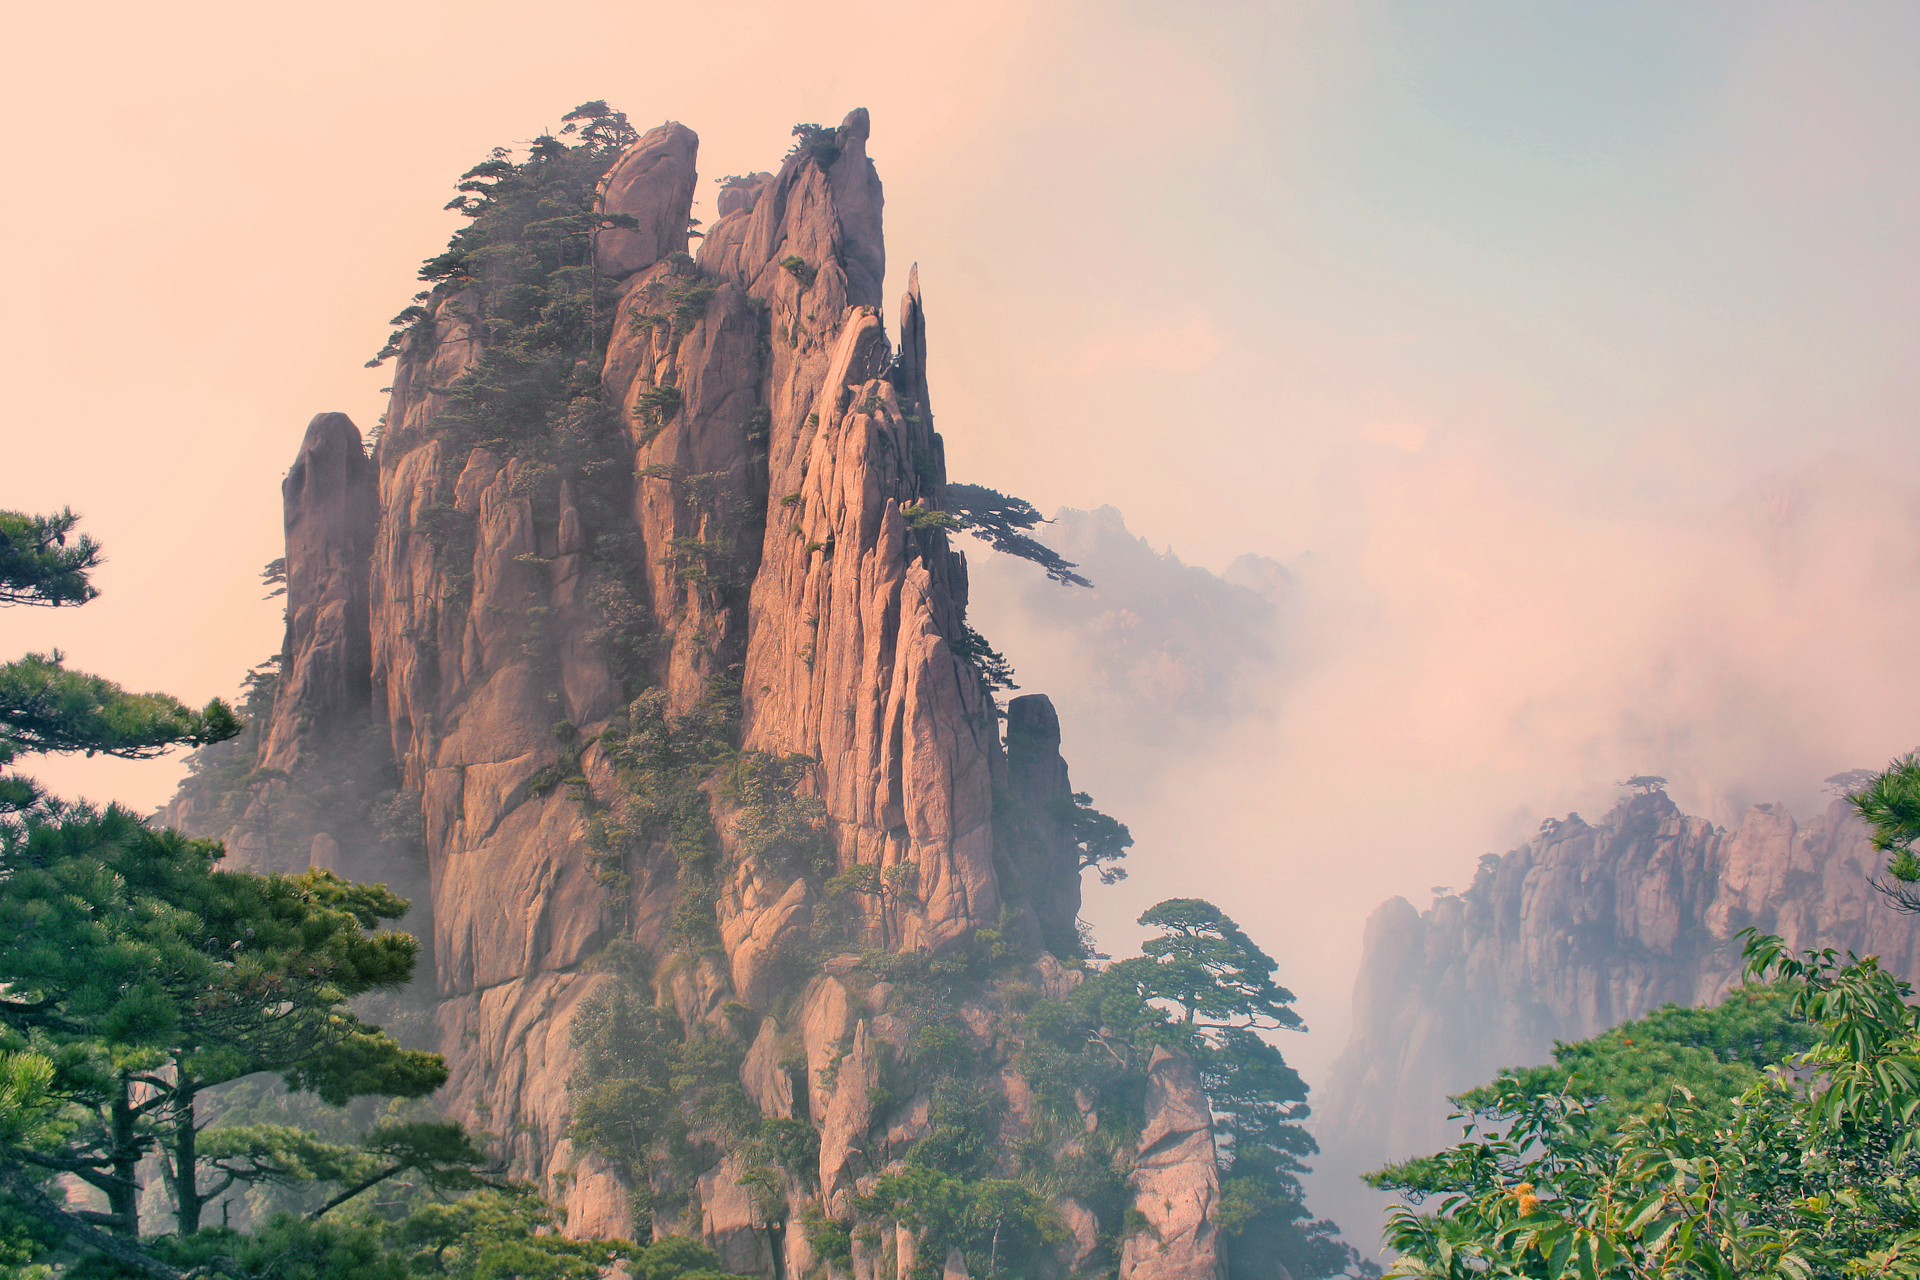 daily wallpaper: avatar hallelujah mountain | i like to waste my time